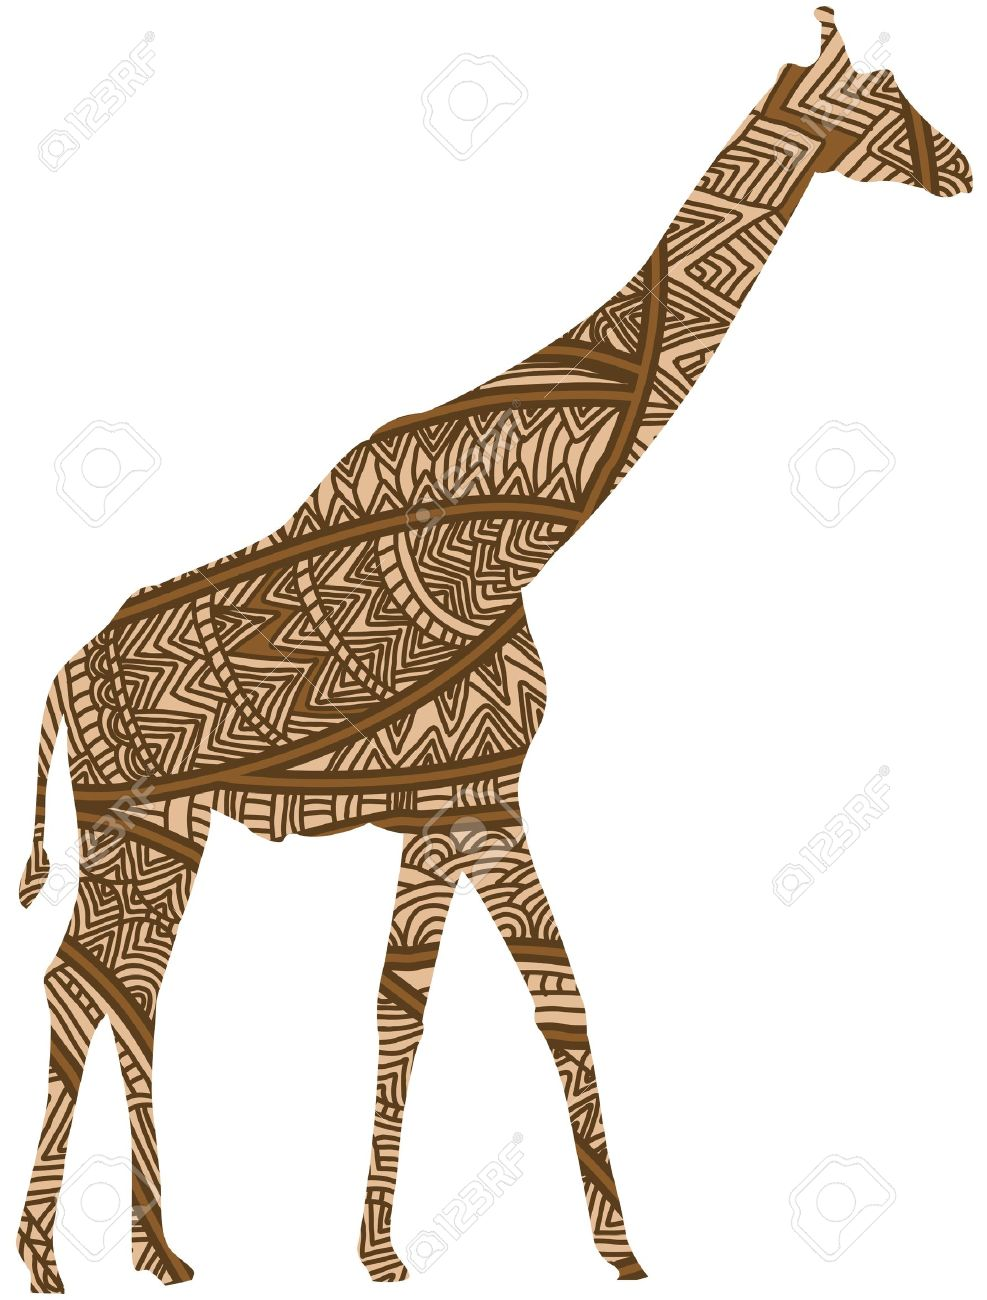 ethnic giraffe is a symbol of beautiful africa royalty free